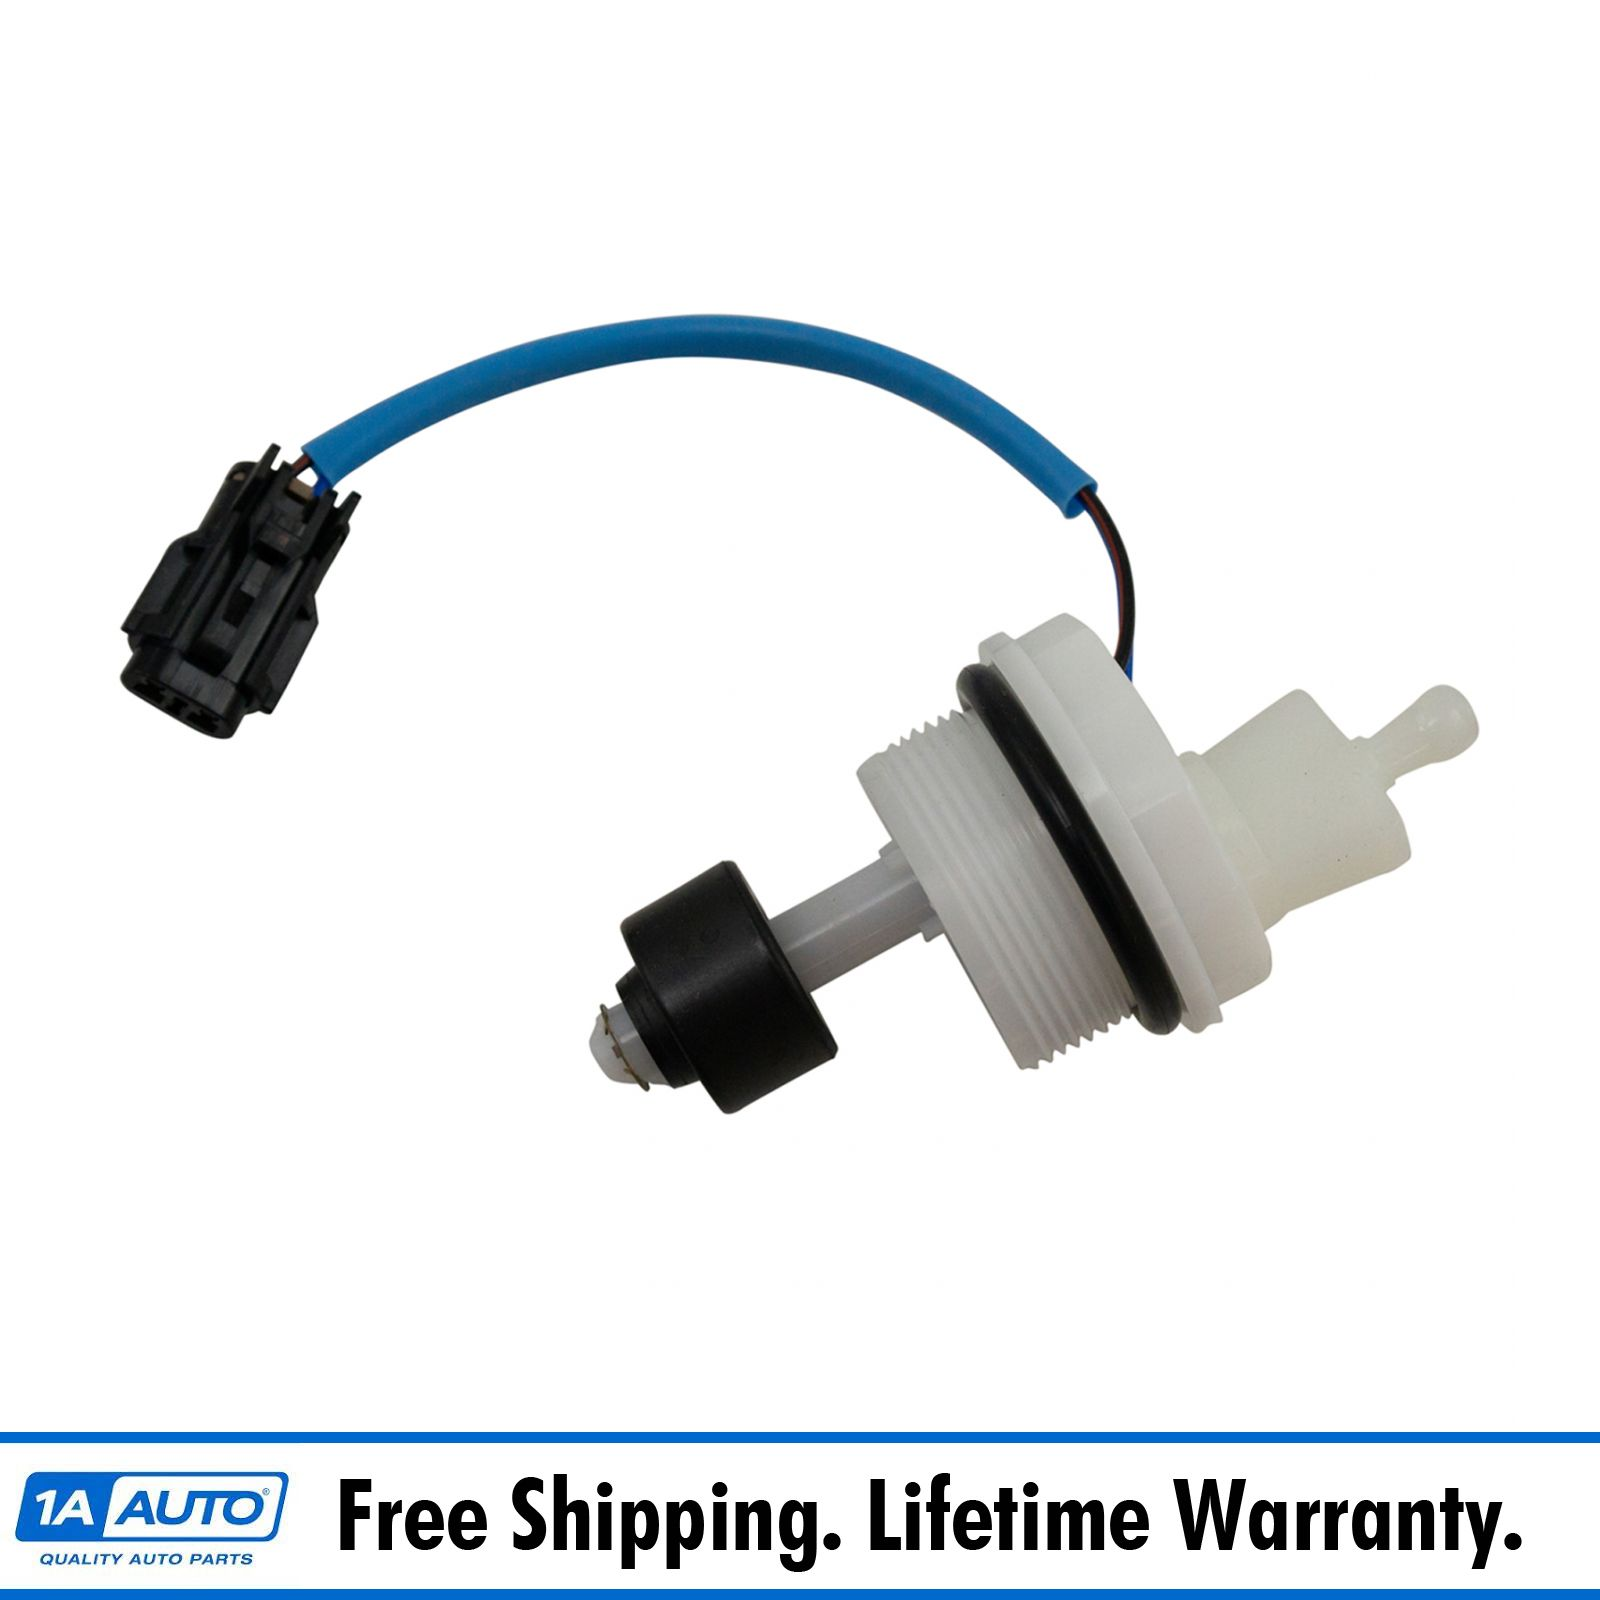 hight resolution of oem 12639277 updated fuel filter water sensor for chevy silverado gmc sierra new